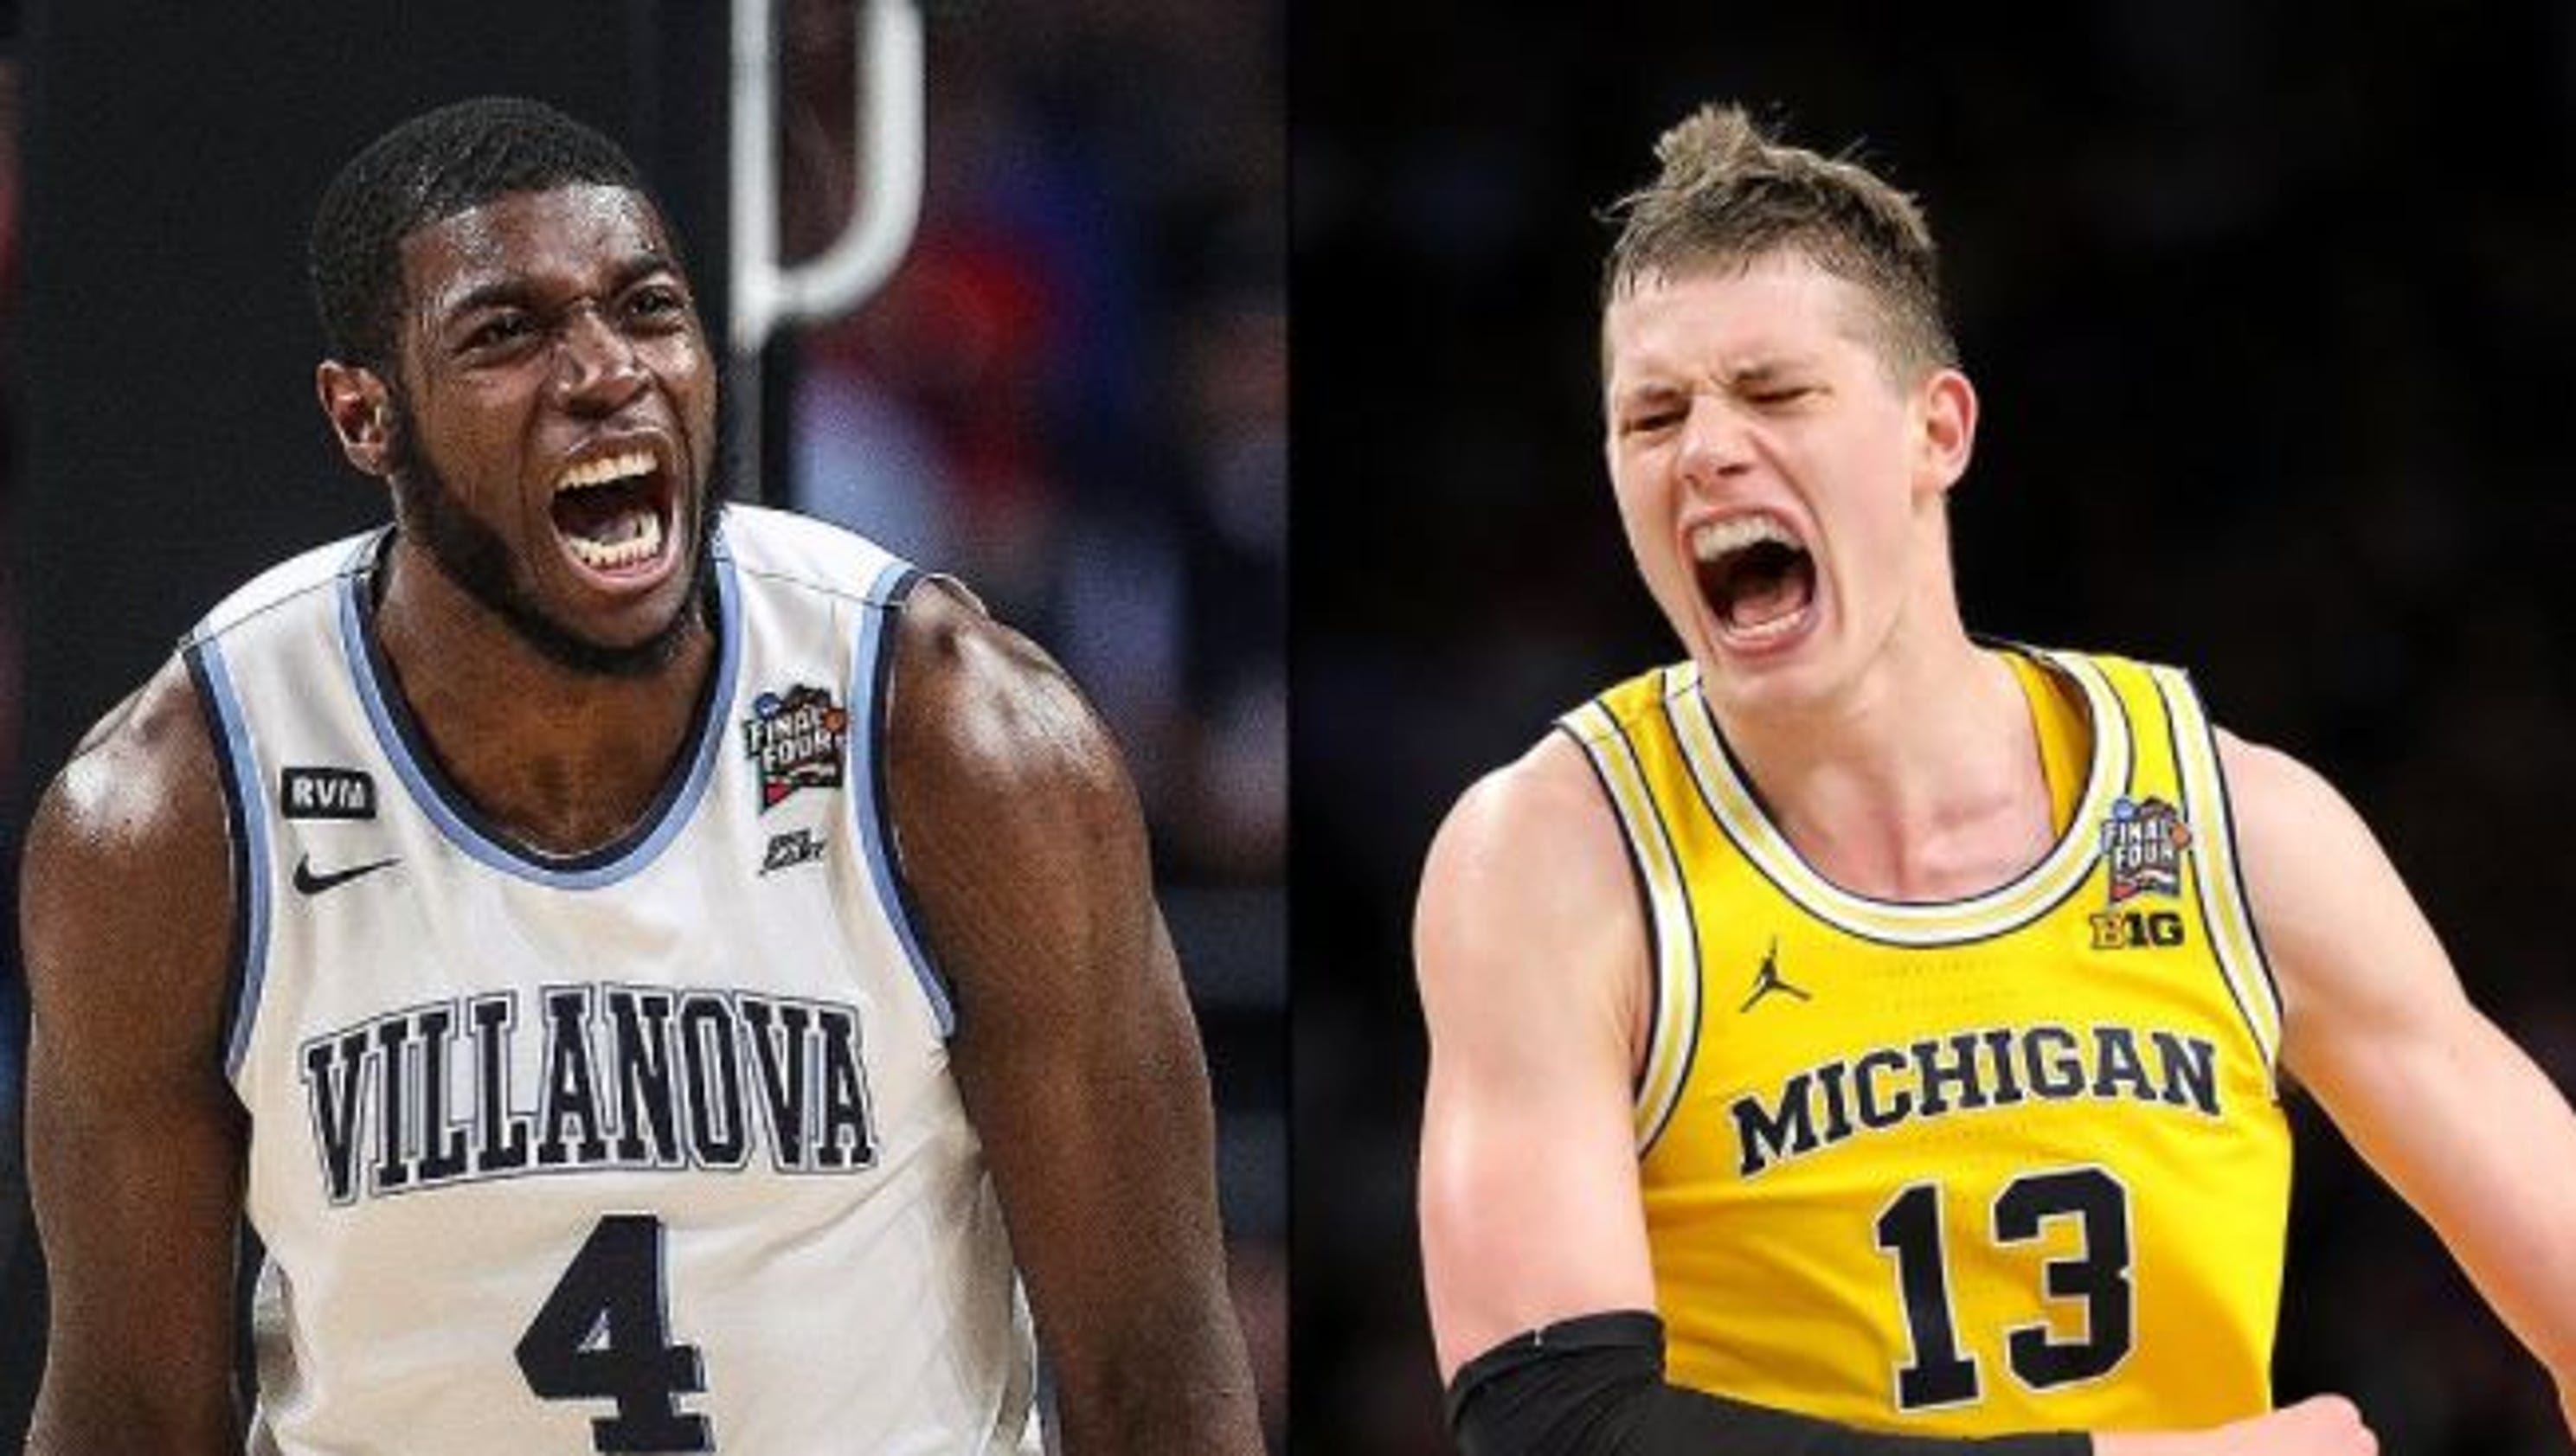 Image result for Michigan Wolverines vs Villanova Wildcats